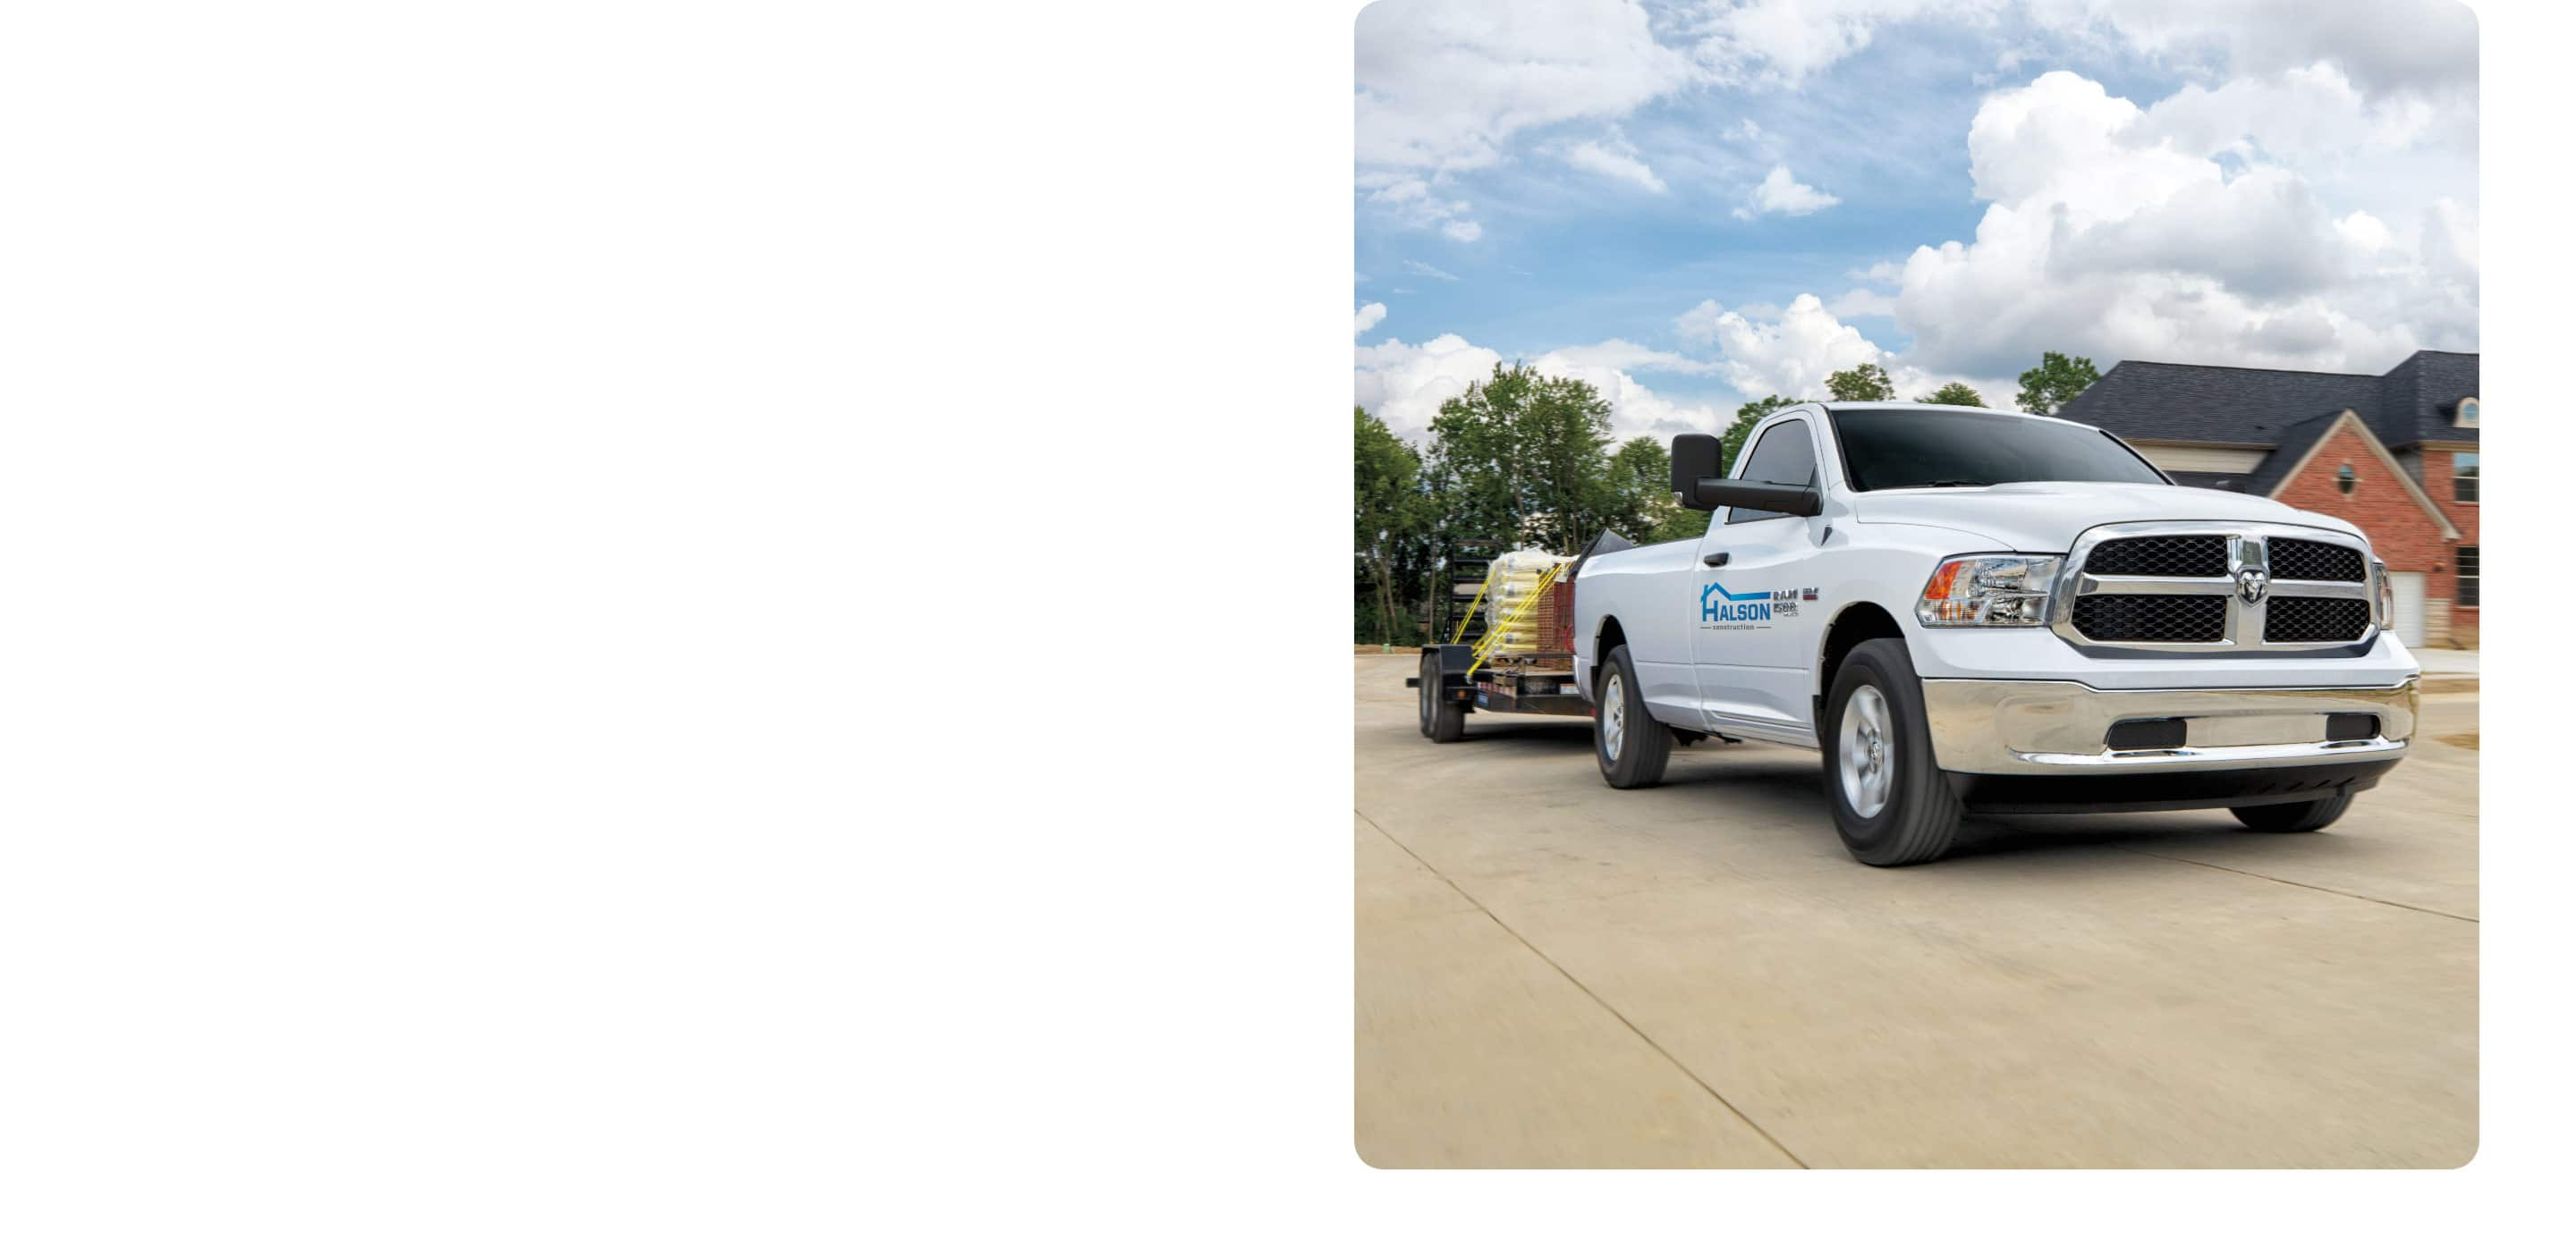 A 2021 Ram 1500 Classic with signage on the door, being driven through a neighborhood subdivision while towing a flatbed trailer loaded with construction materials.